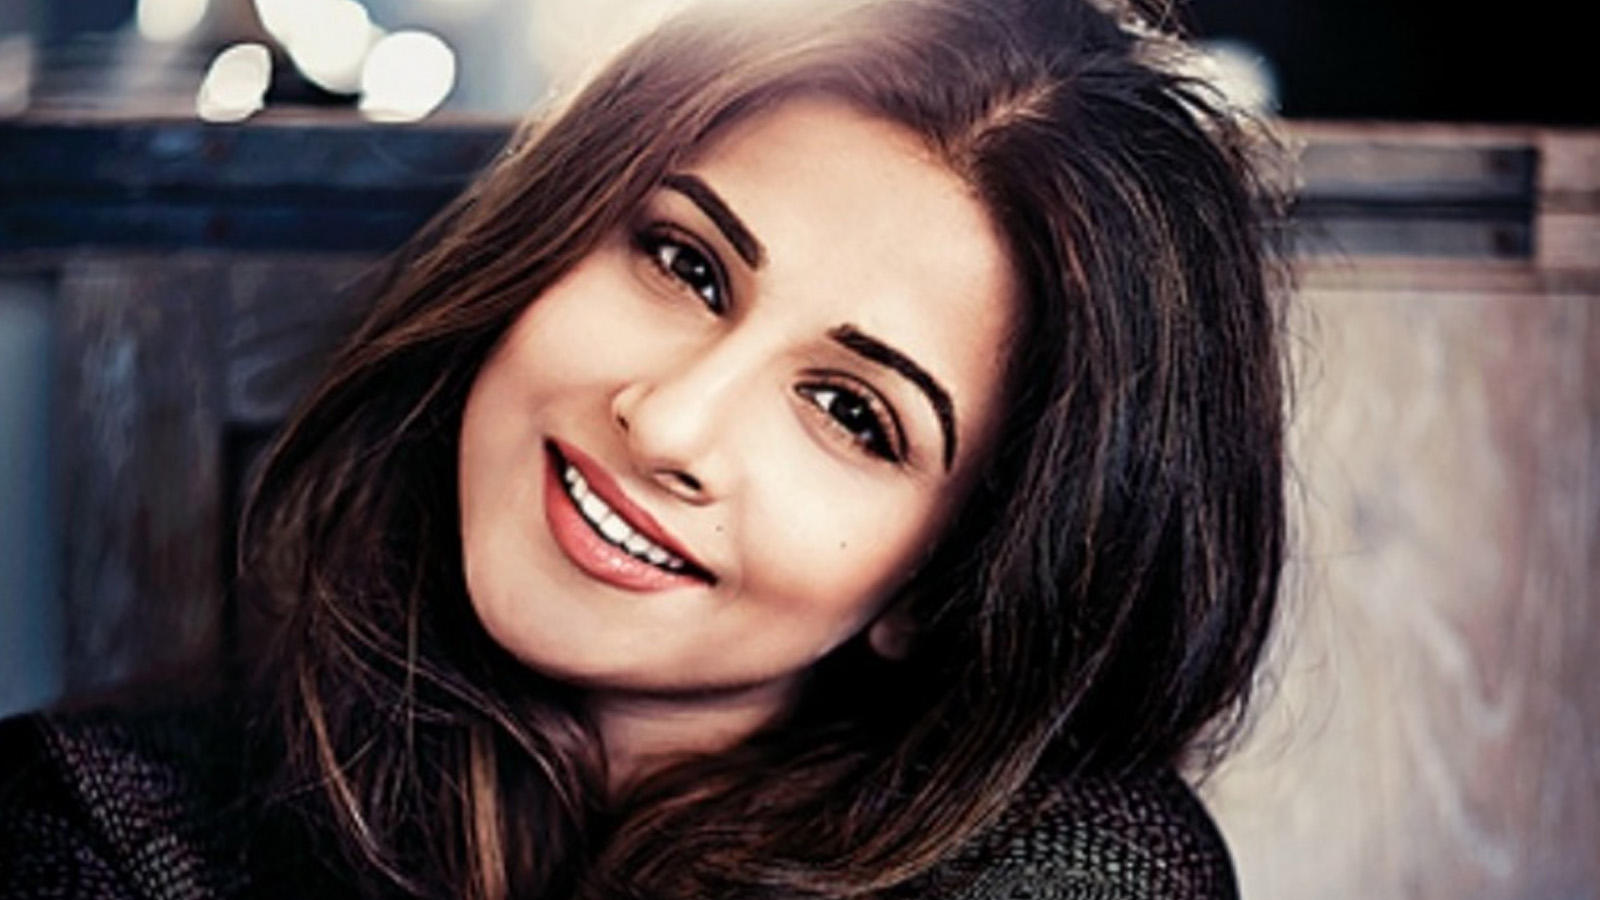 men-attract-me-the-most-says-mission-mangal-star-vidya-balan-in-jovial-mood